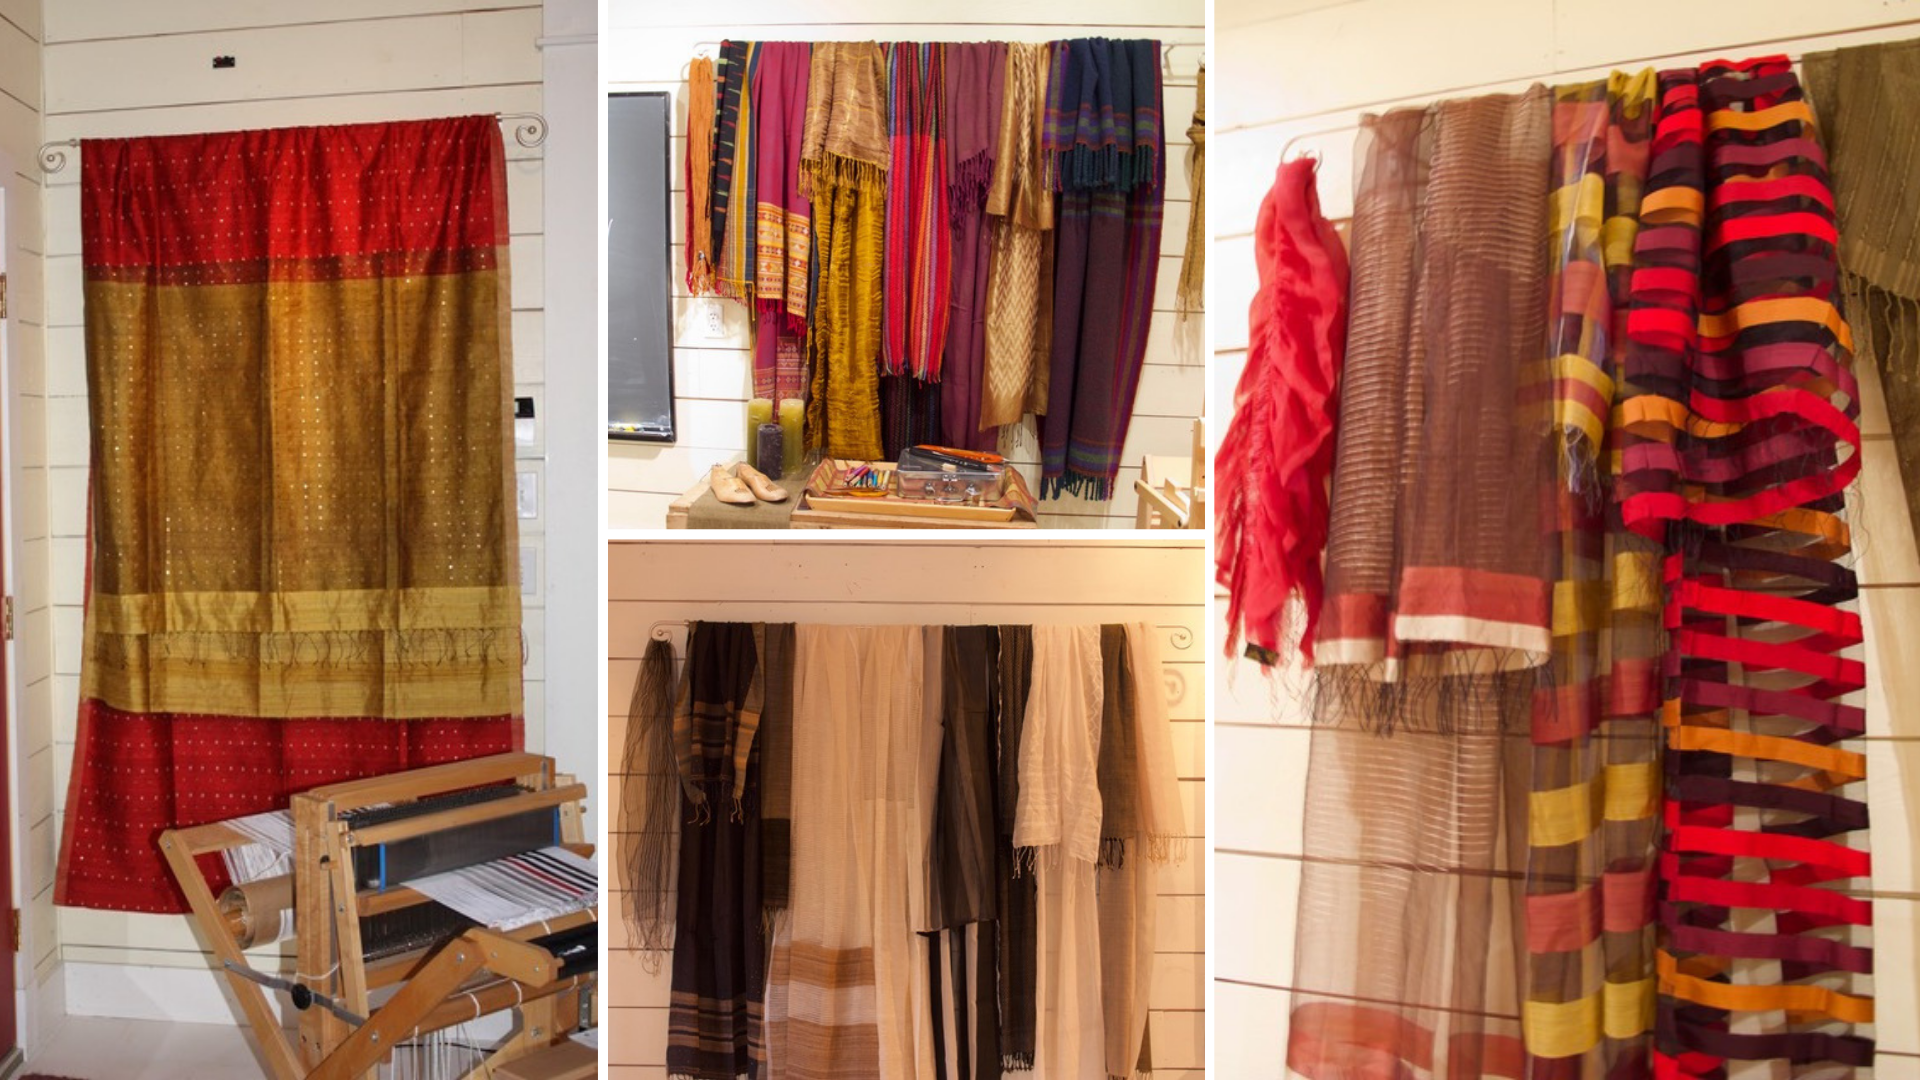 Handweaving in India: some of the beautiful handwoven samples on display in the JST Textiles studio